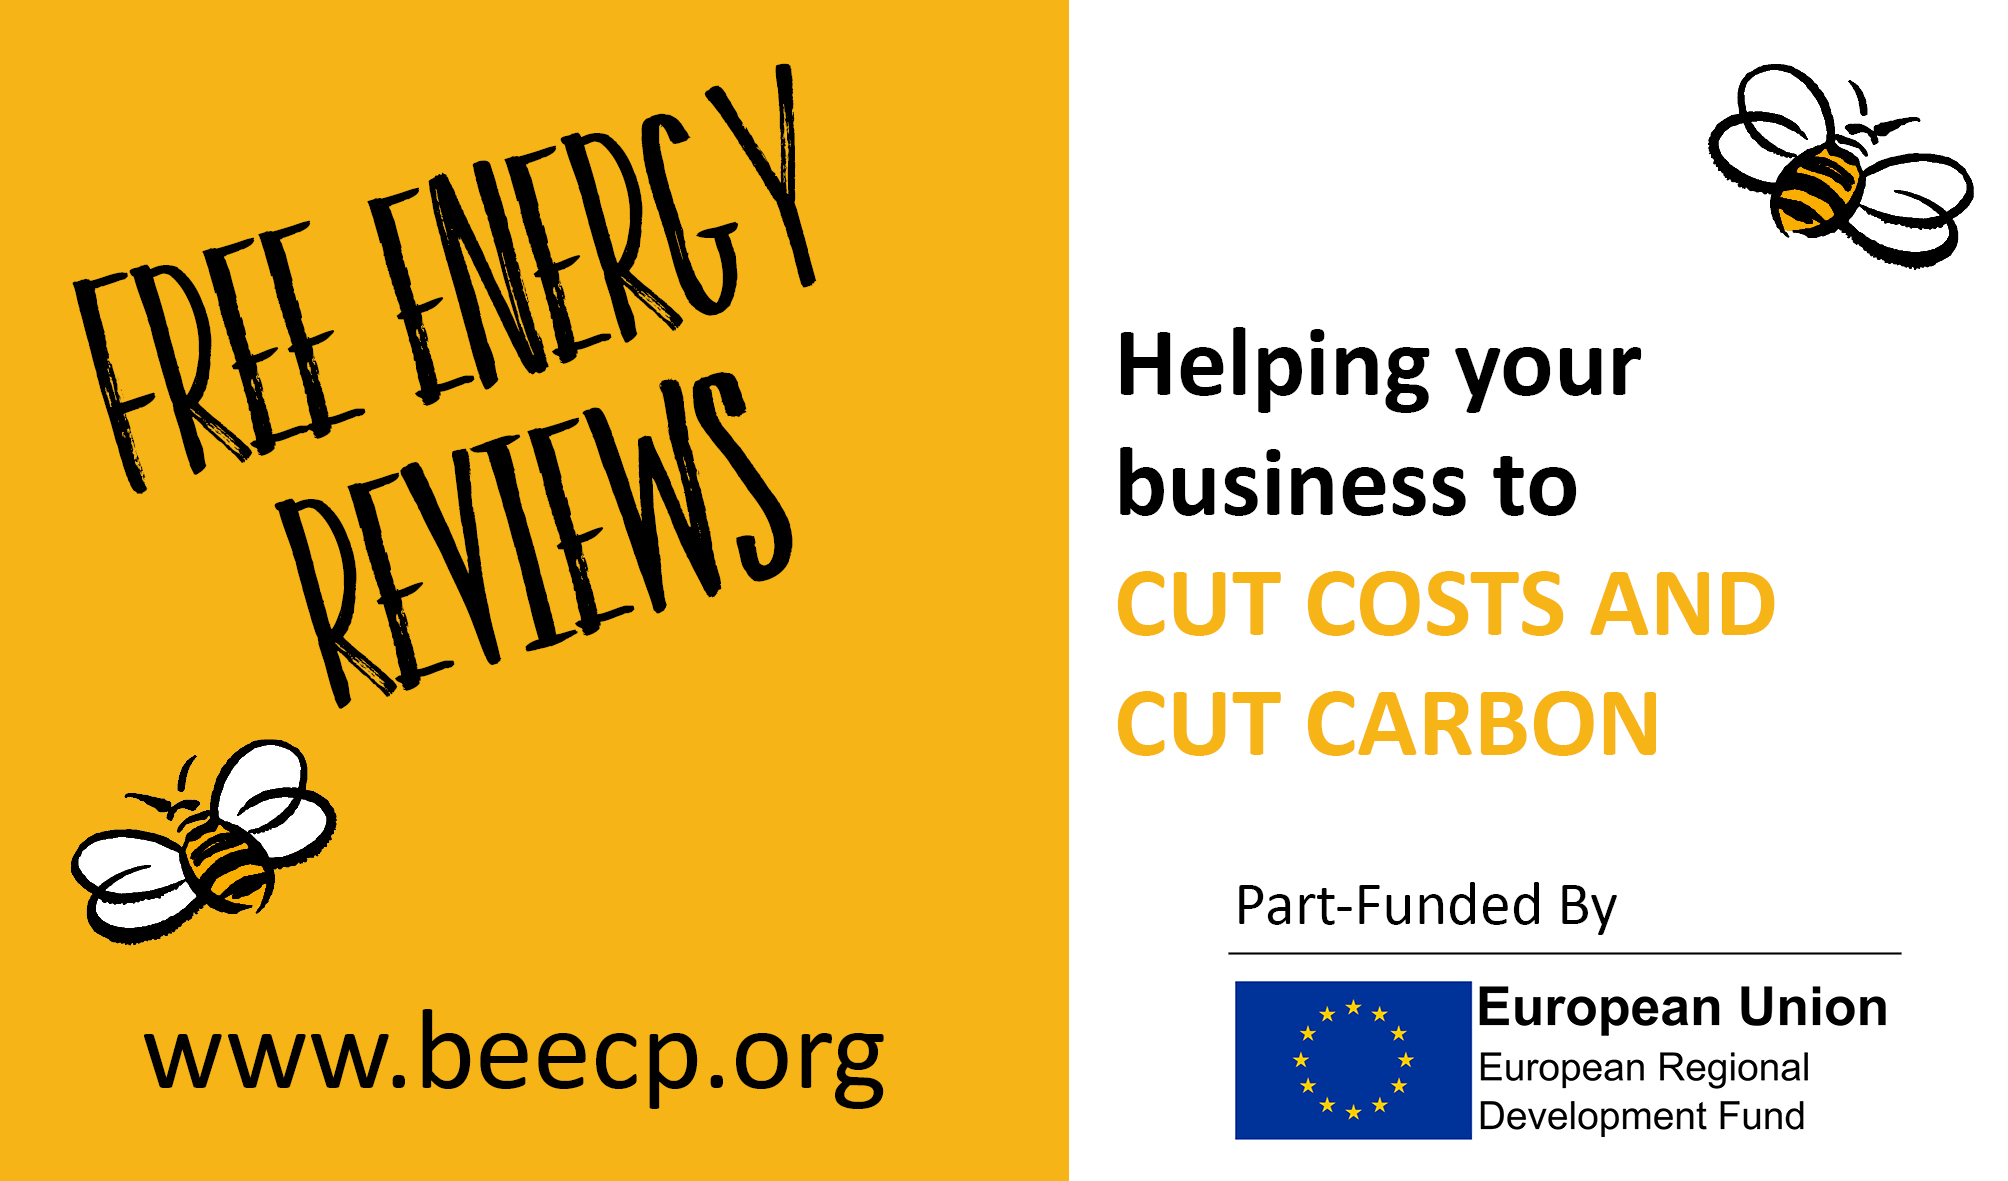 Final call for FREE Business Energy Efficiency Audits